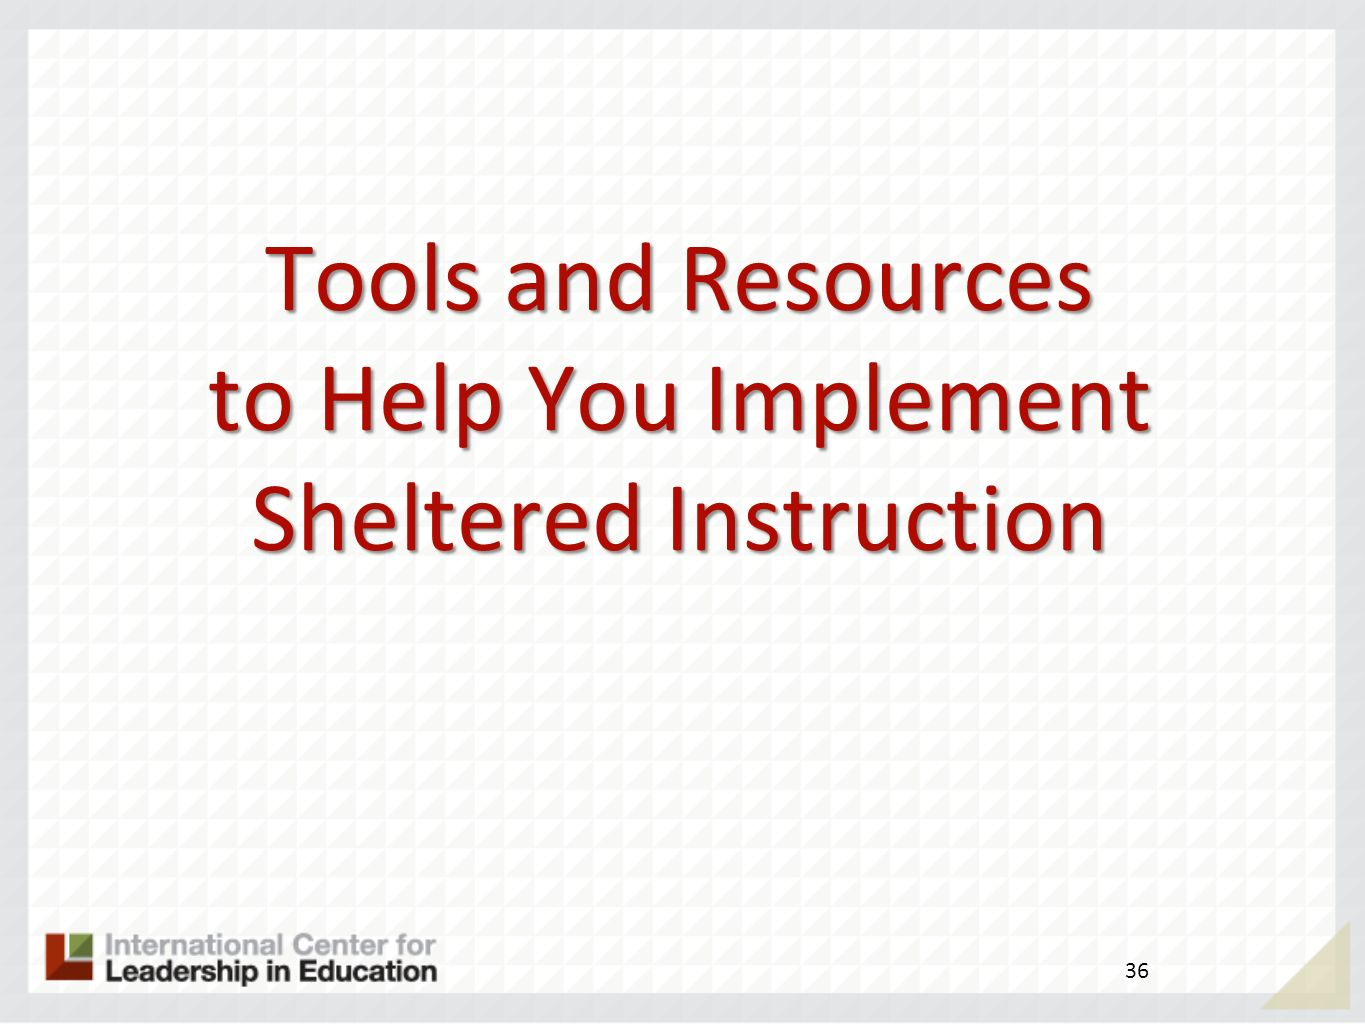 Tools and Resources to Help You Implement Sheltered Instruction